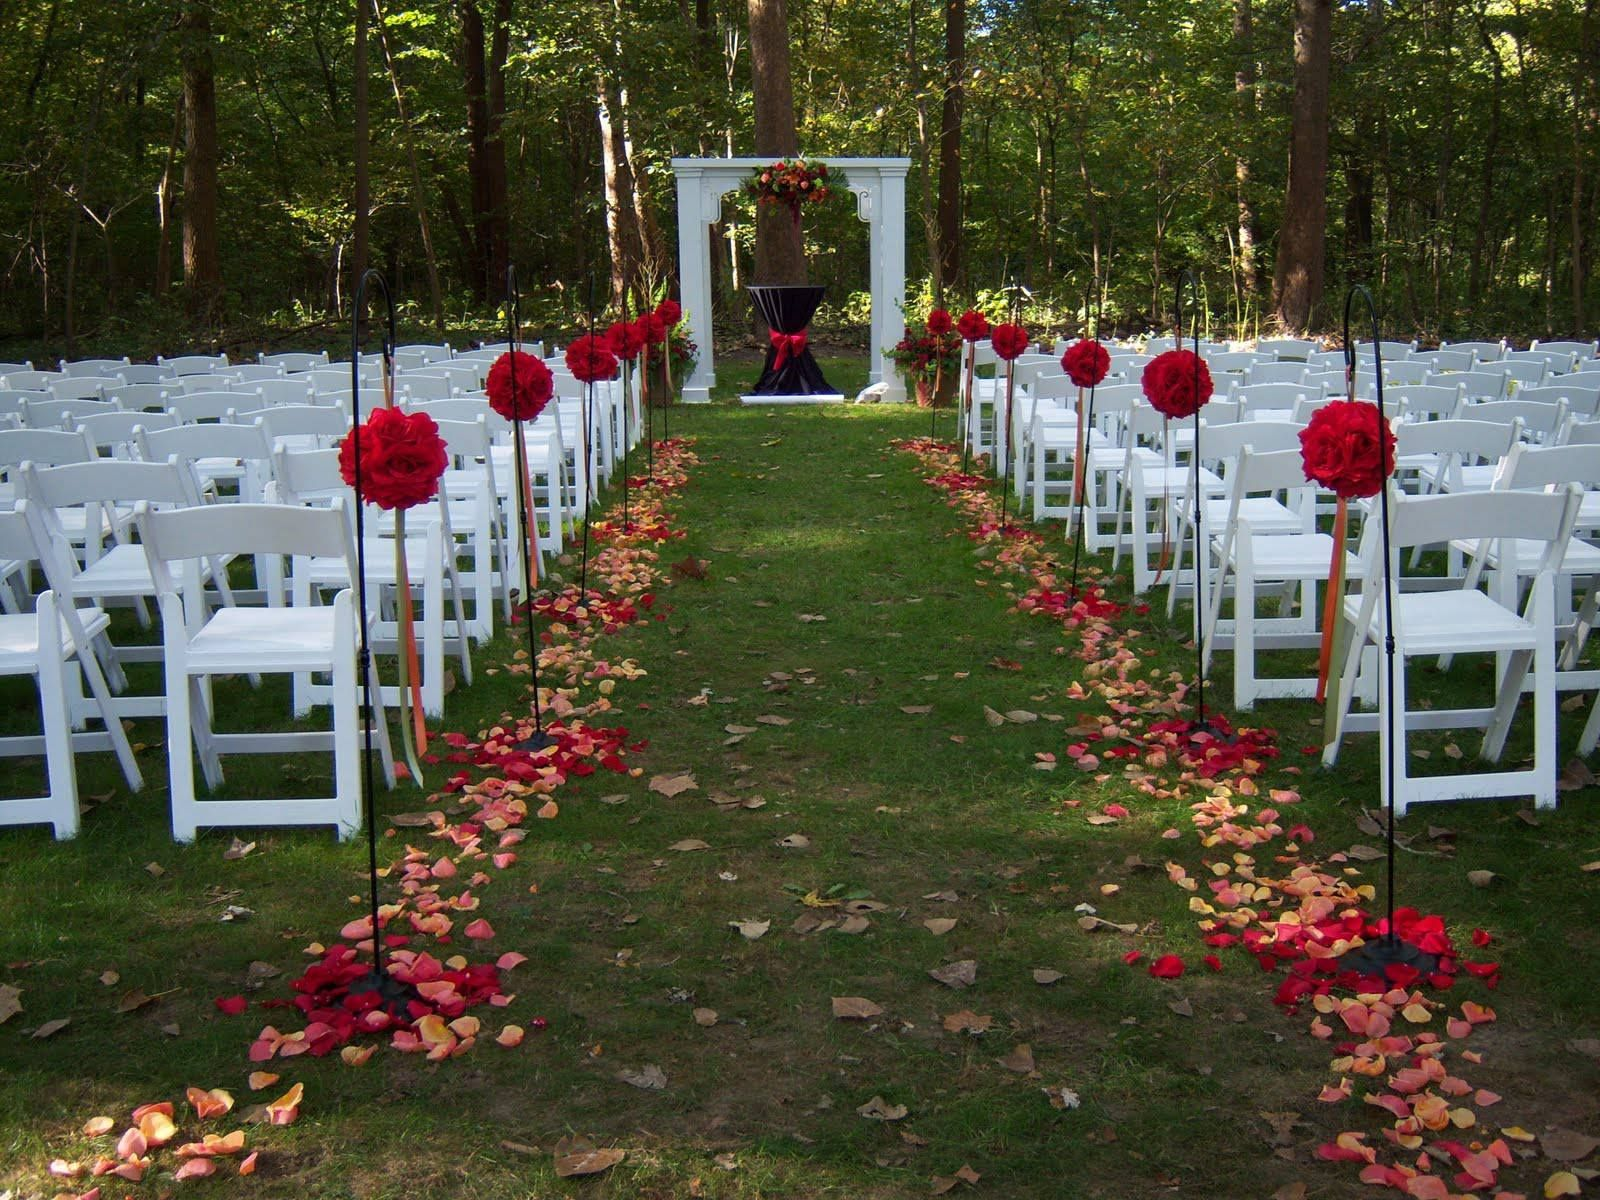 Fall outside wedding decoration ideas  Pin by Royal Events u Weddings on Outdoor wedding decorations